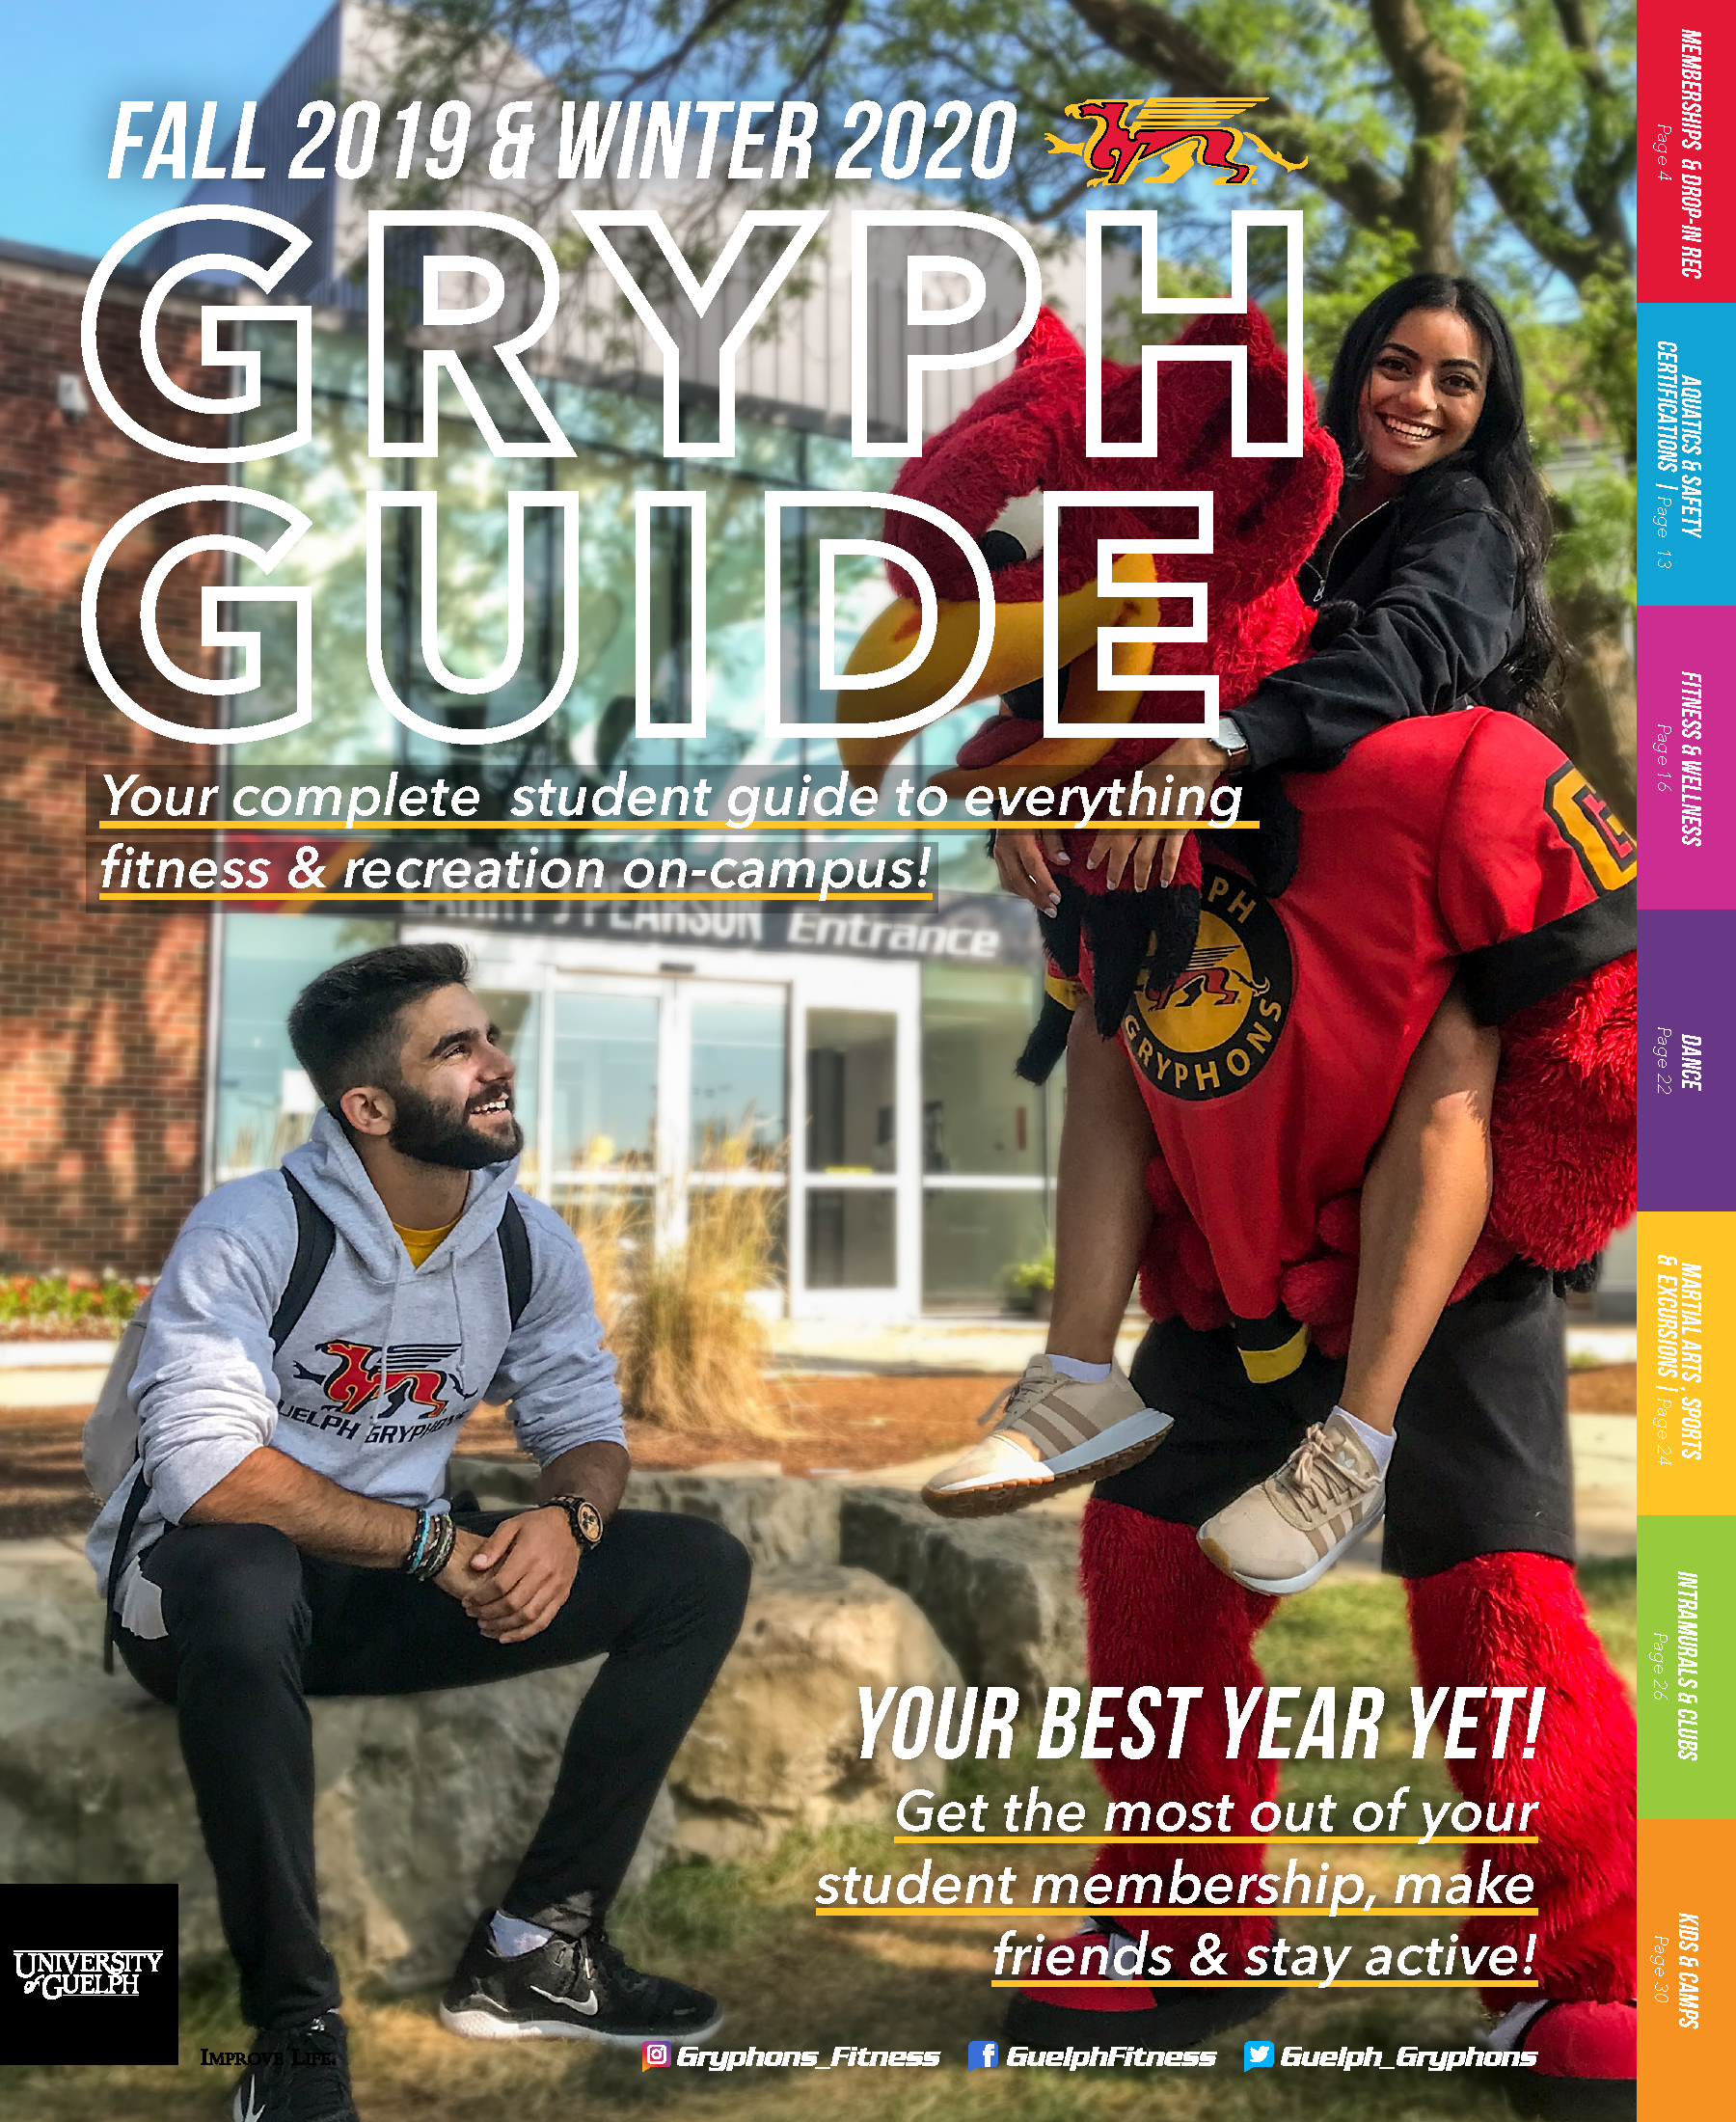 Fall 2019 Winter 2020 Gryph Guide